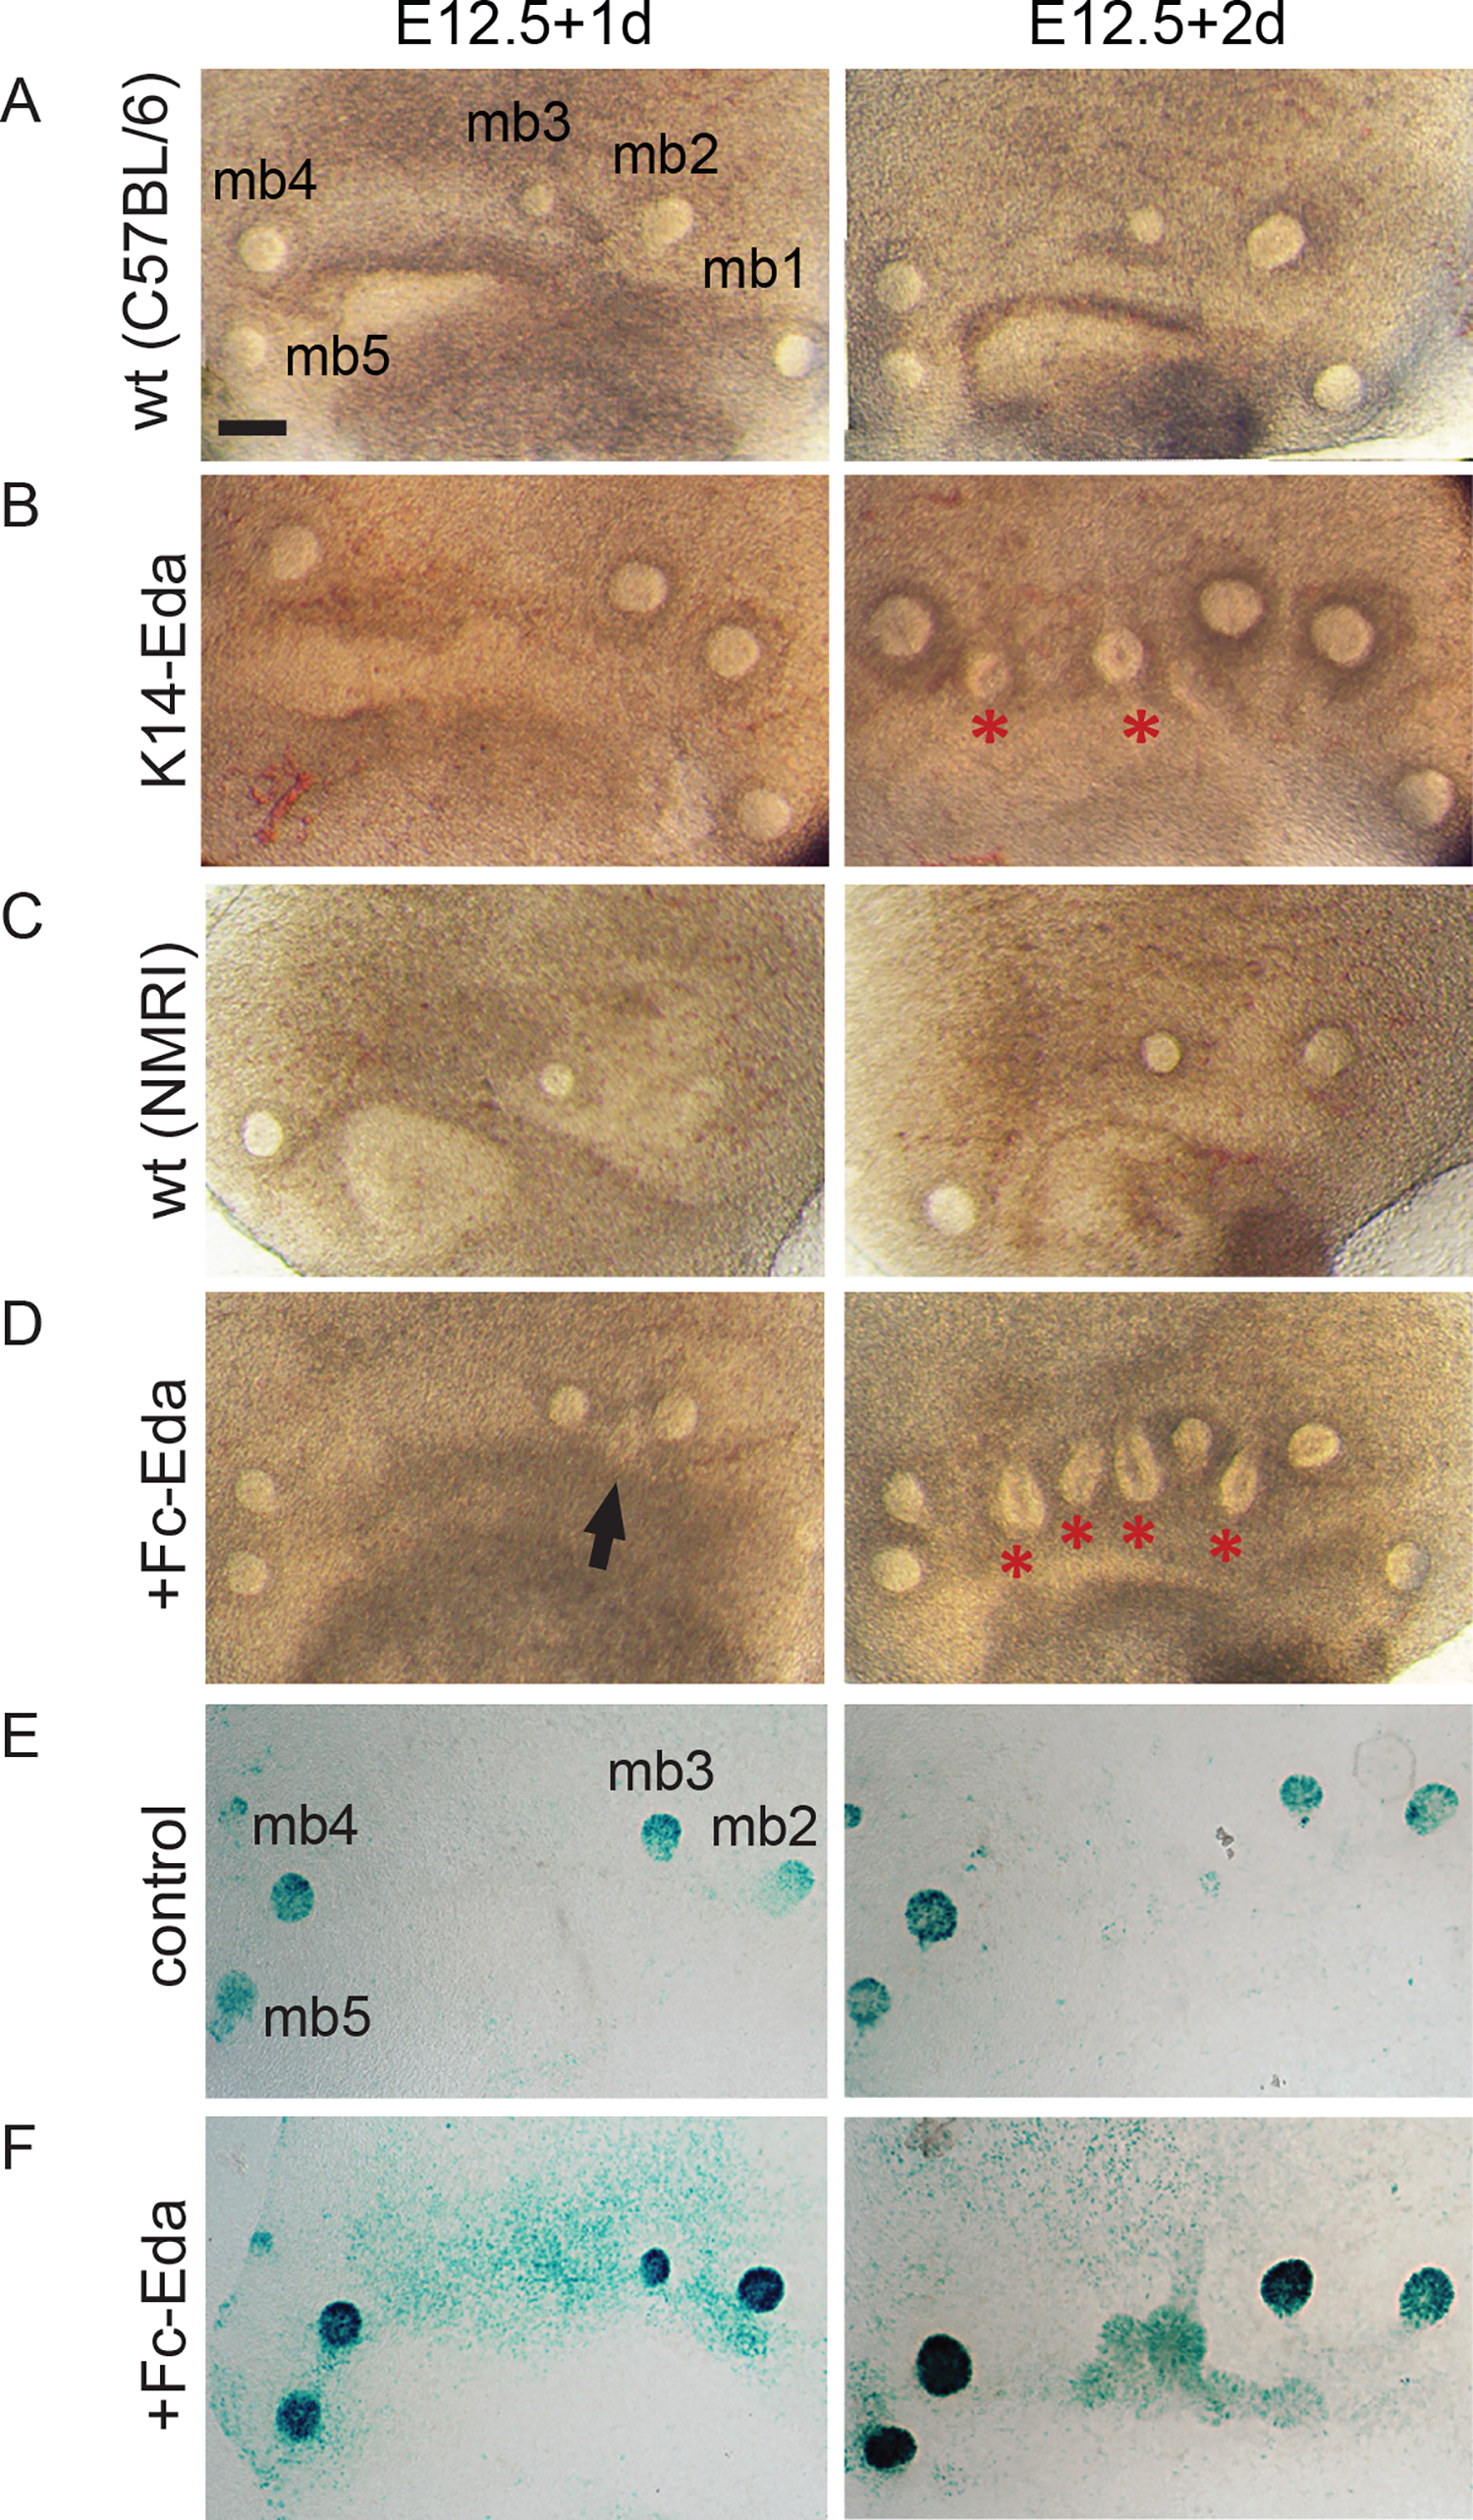 Recombinant Eda protein induces supernumerary mammary placodes and upregulates NF-κB reporter expression ex vivo.